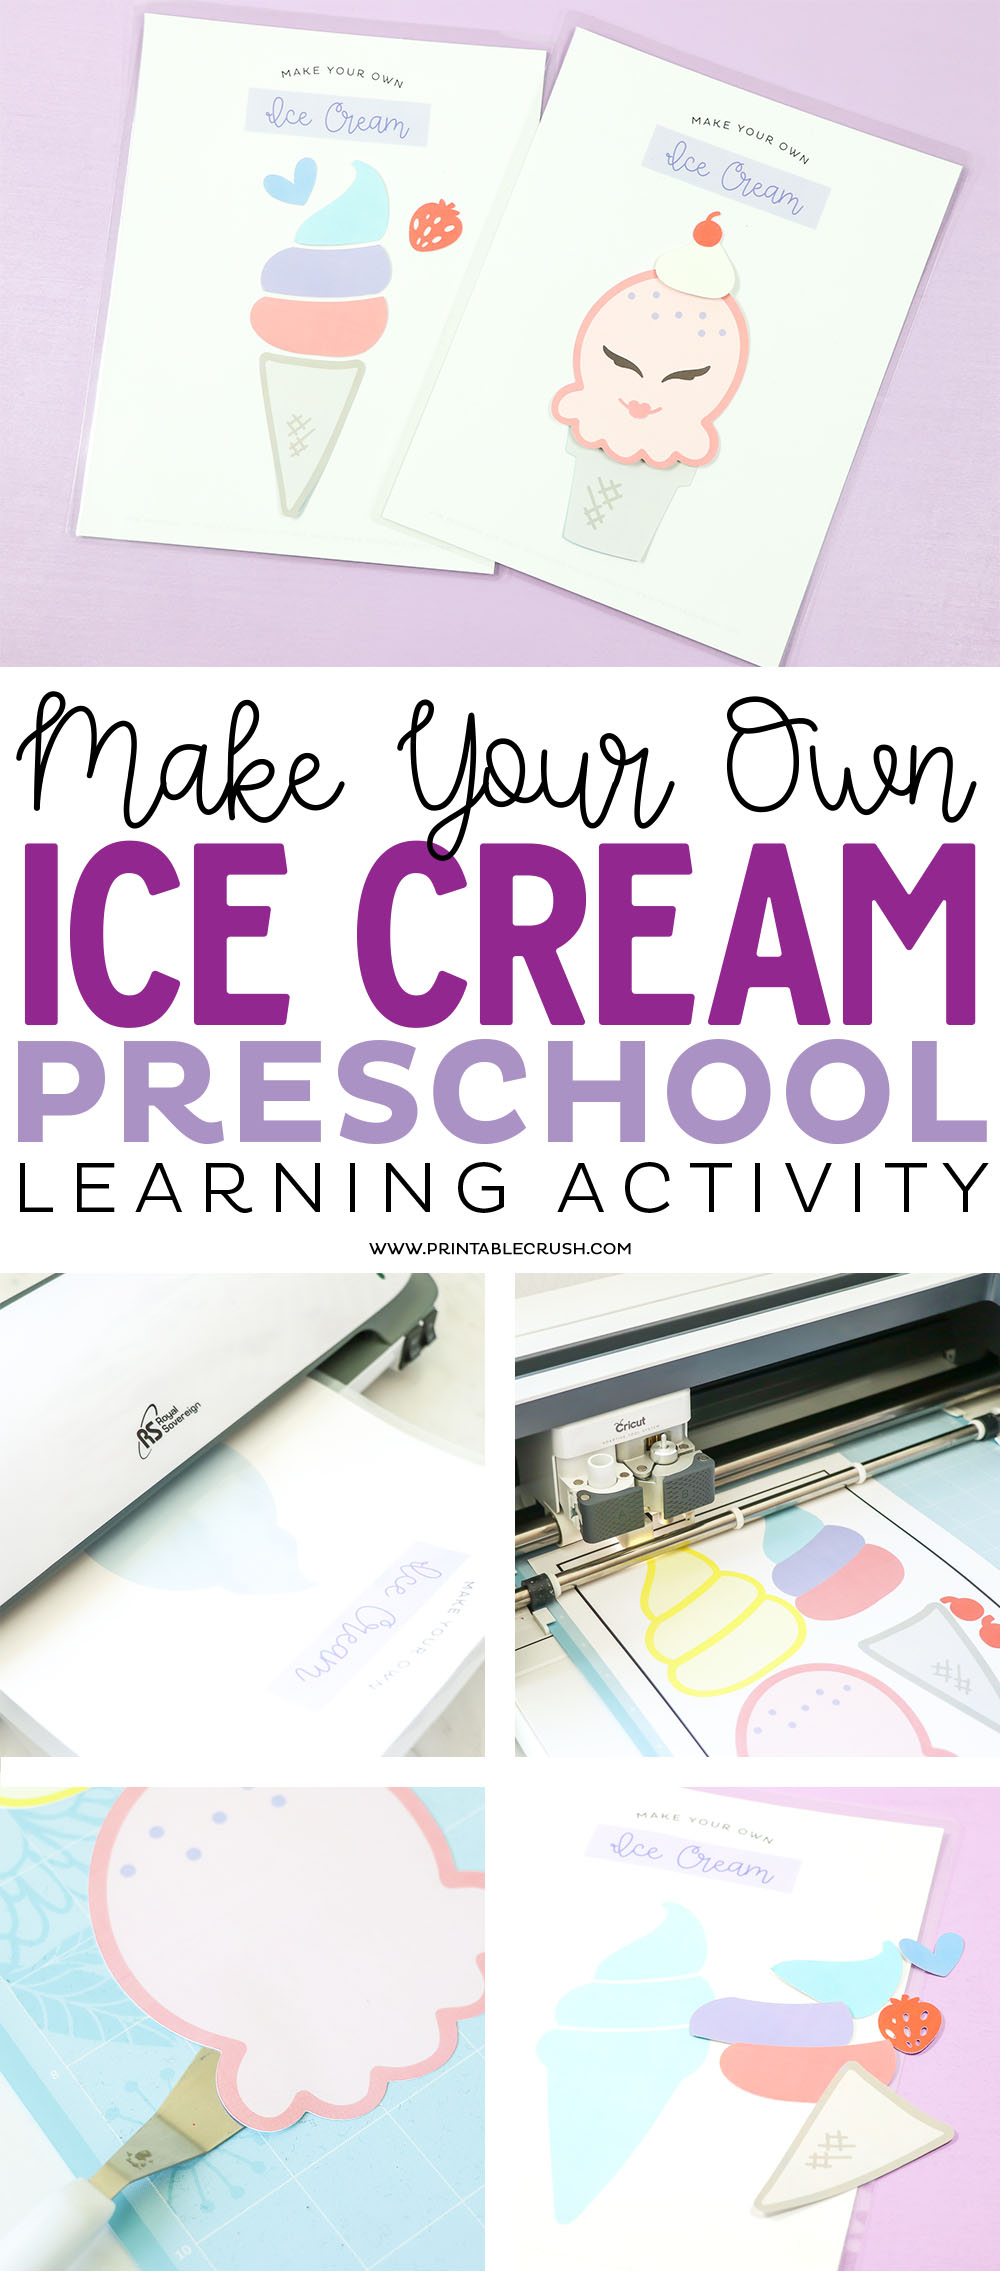 Your kids will LOVE this Make Your Own Ice Cream Printable Activity! It's the perfect preschool learning activity!